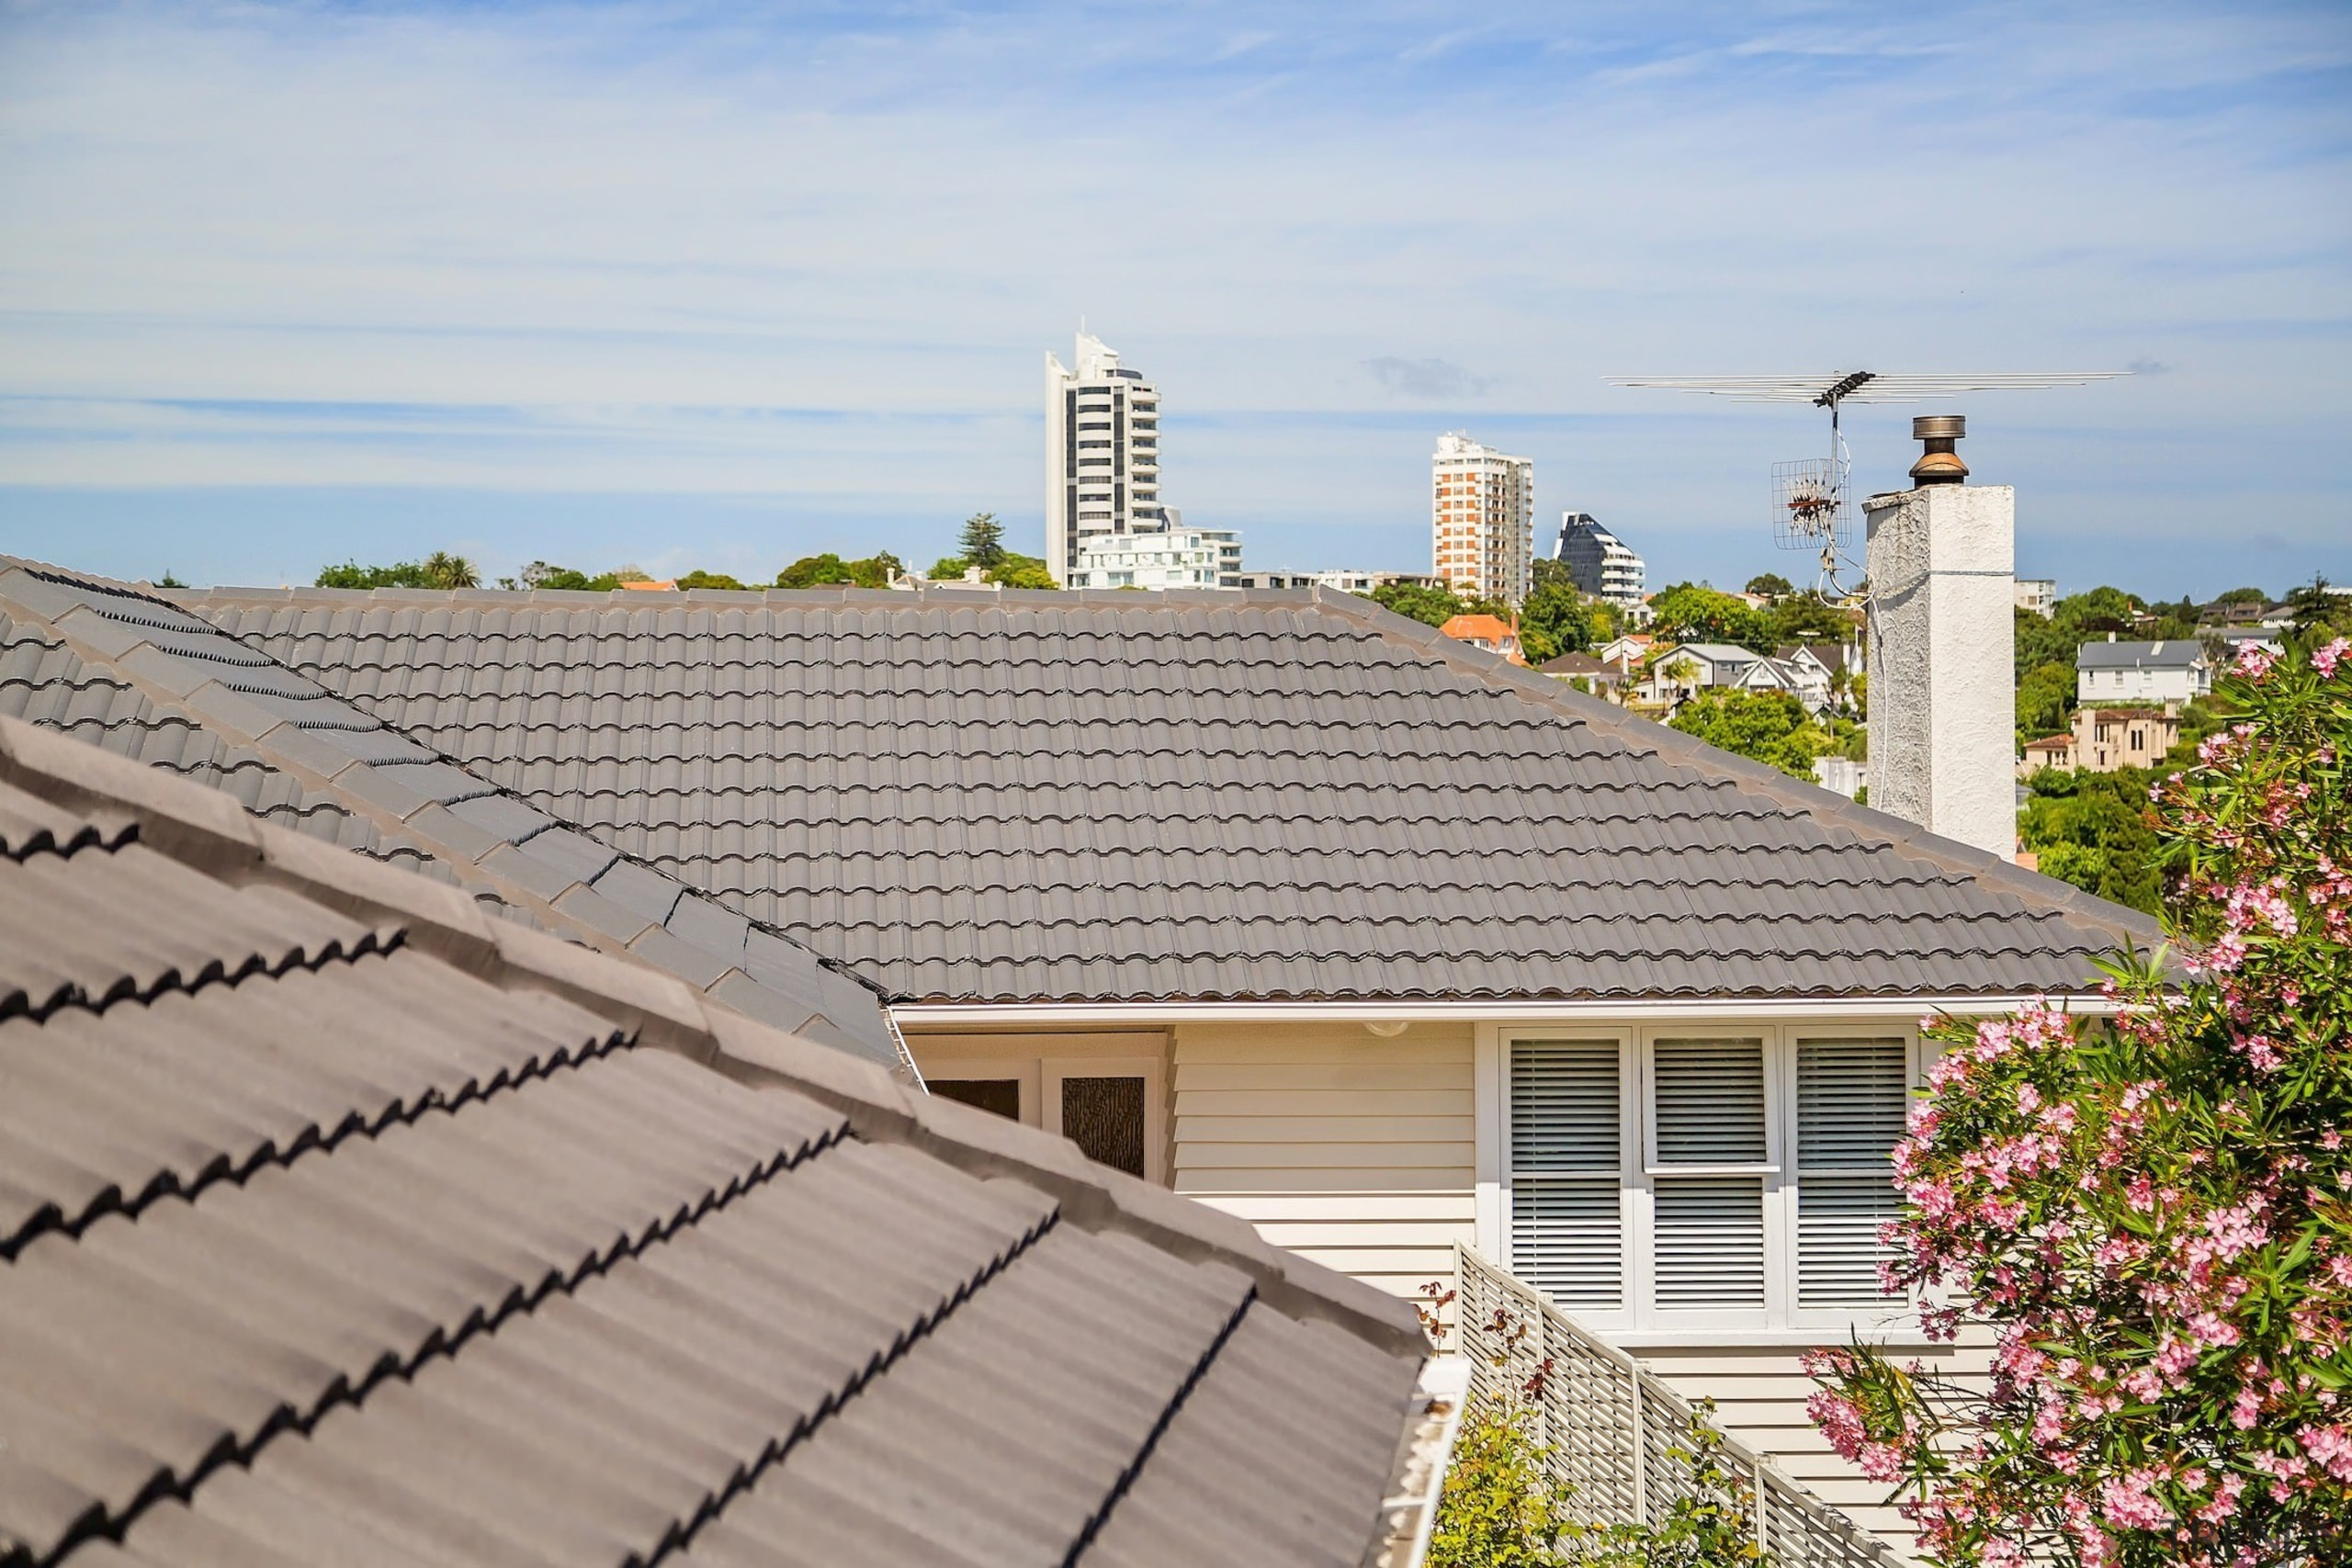 Visit the Monier Roofing website home, house, outdoor structure, property, real estate, residential area, roof, sky, gray